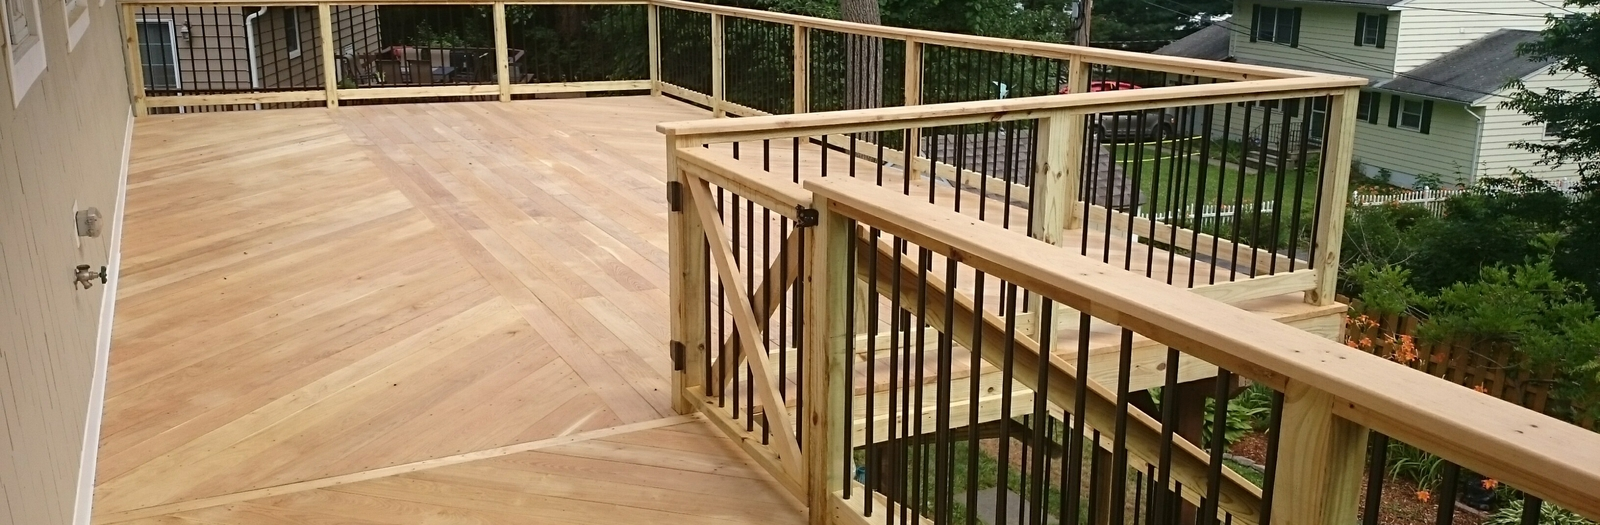 Casual / Comfortable Deck with aluminum baluster rails